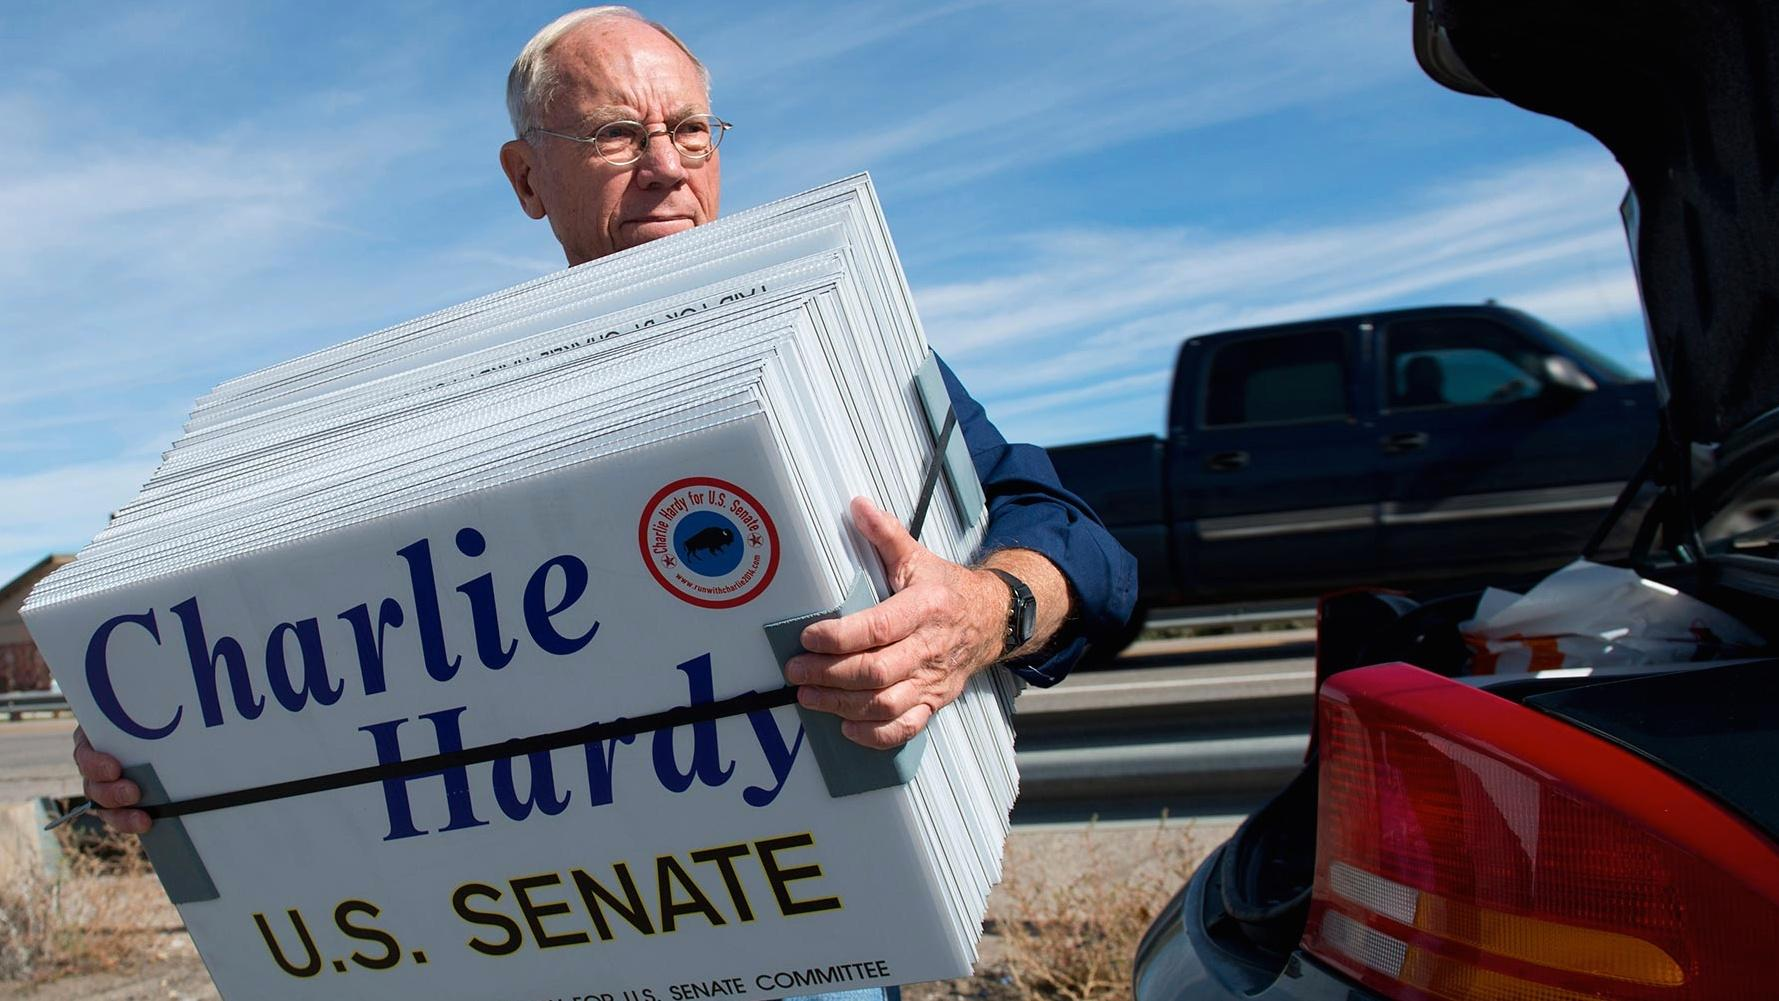 Charlie Hardy for U.S. Senate, holding a stack of yard signs.